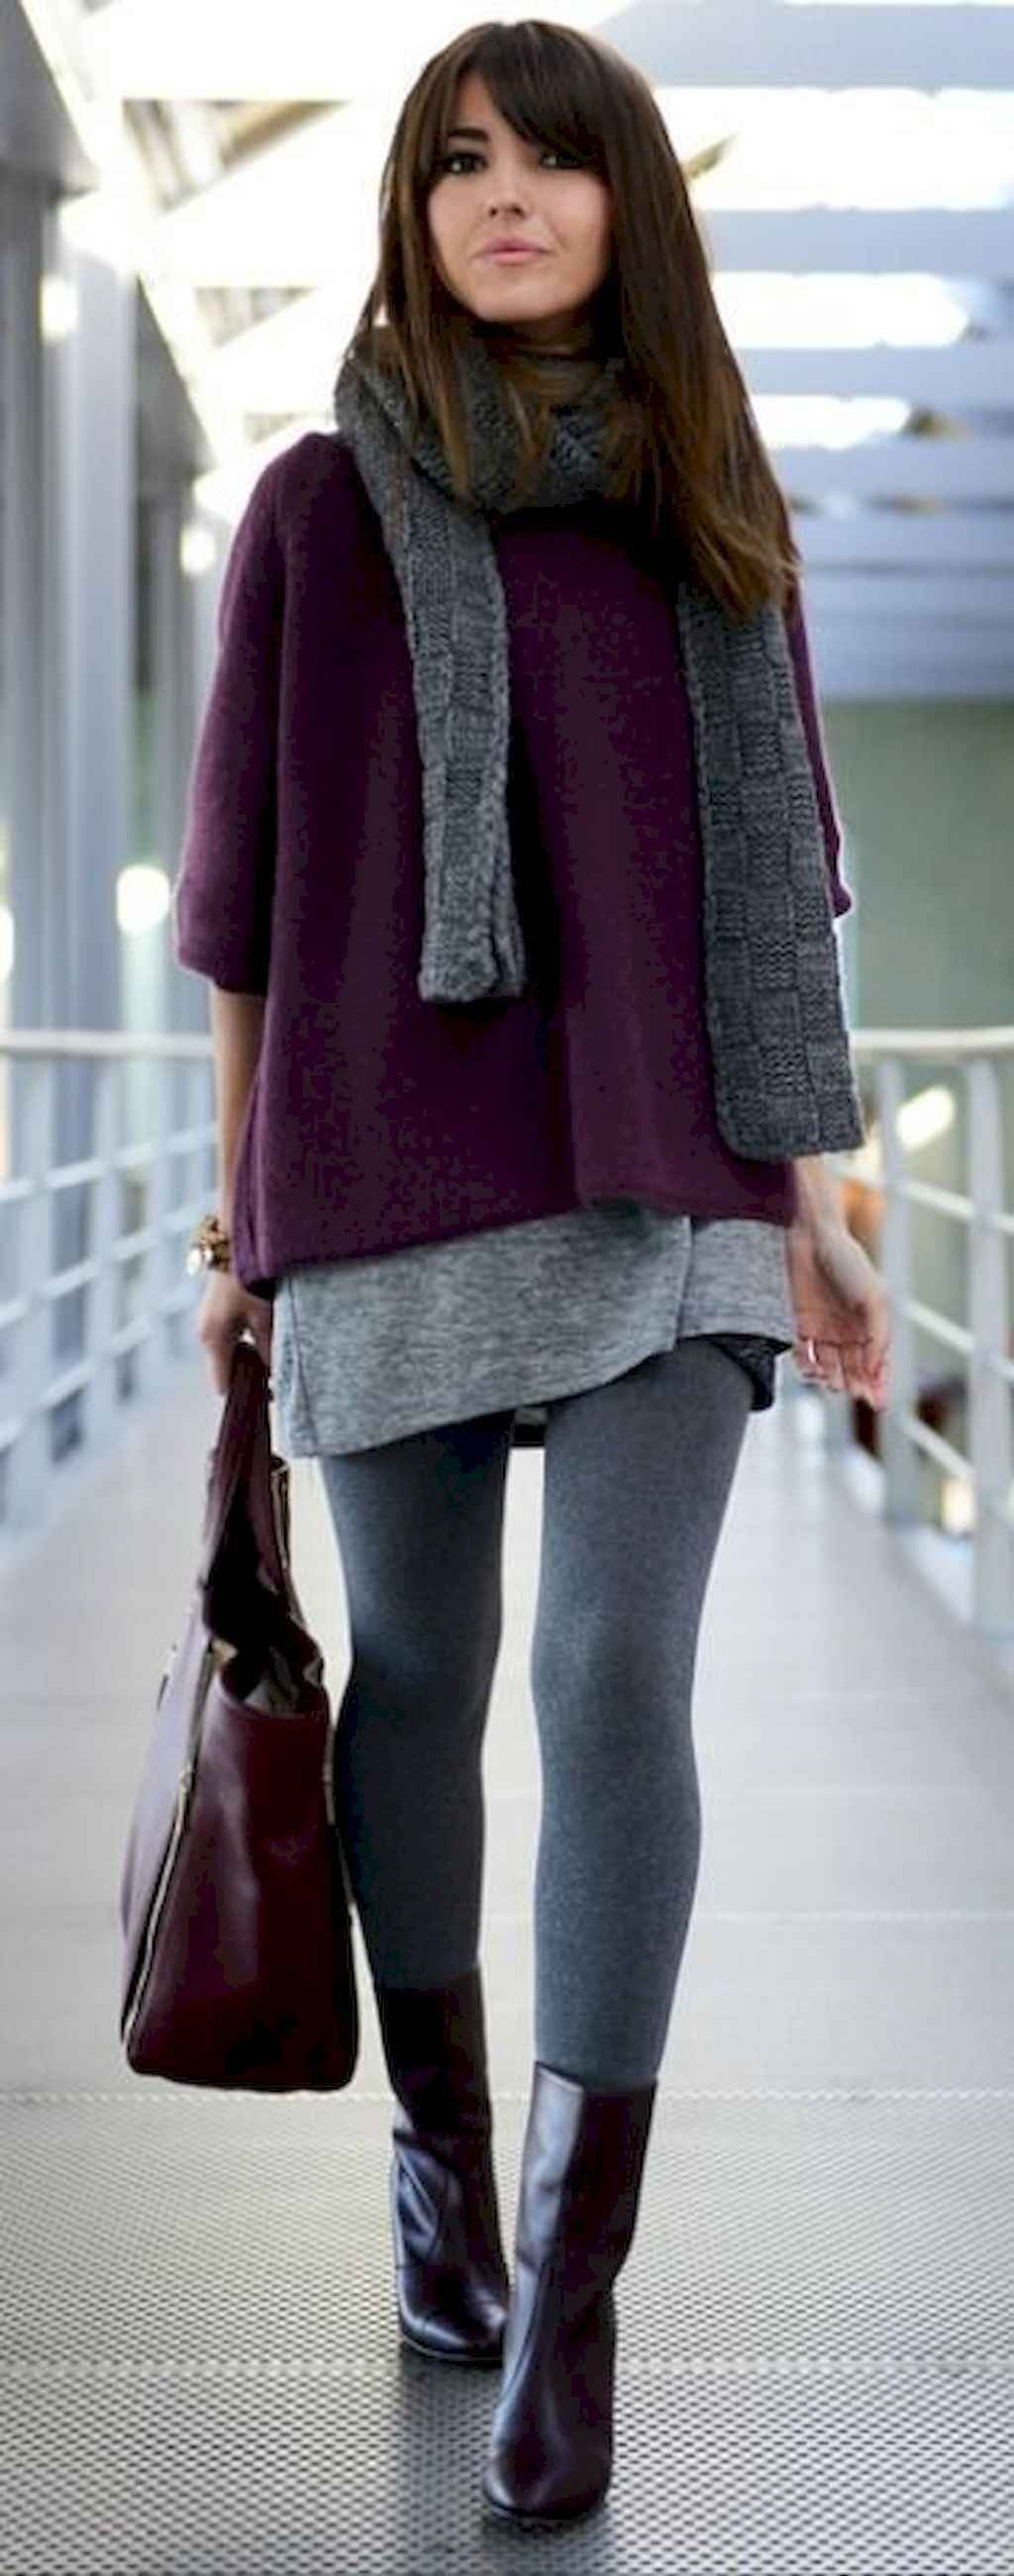 dress with leggings style